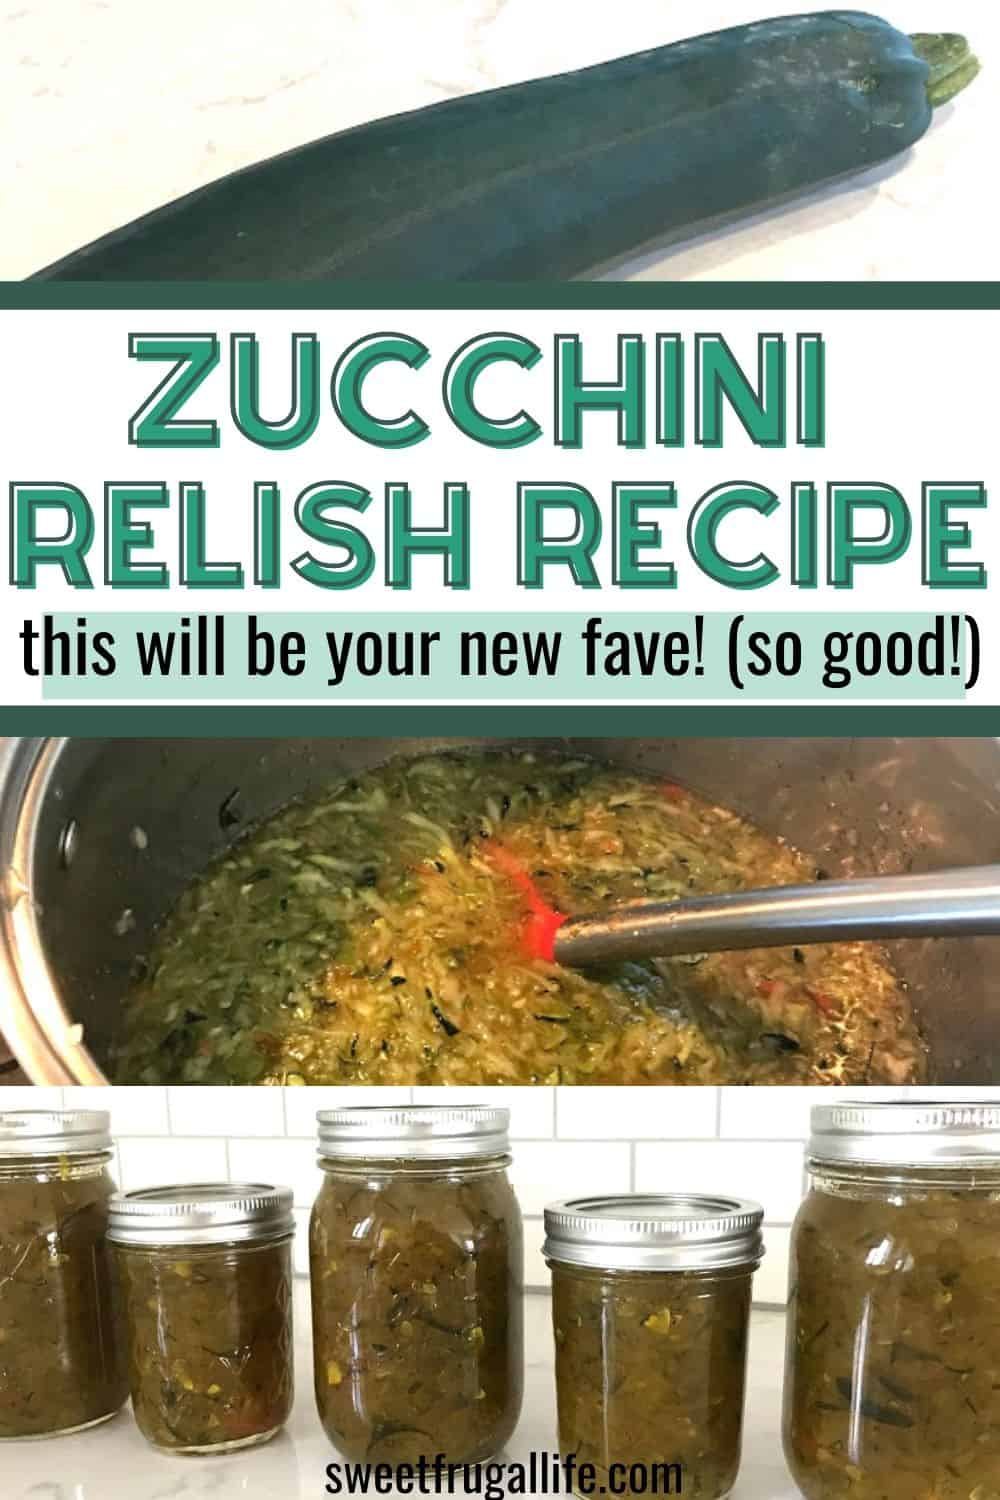 zucchini relish recipe - how to make zucchini relish